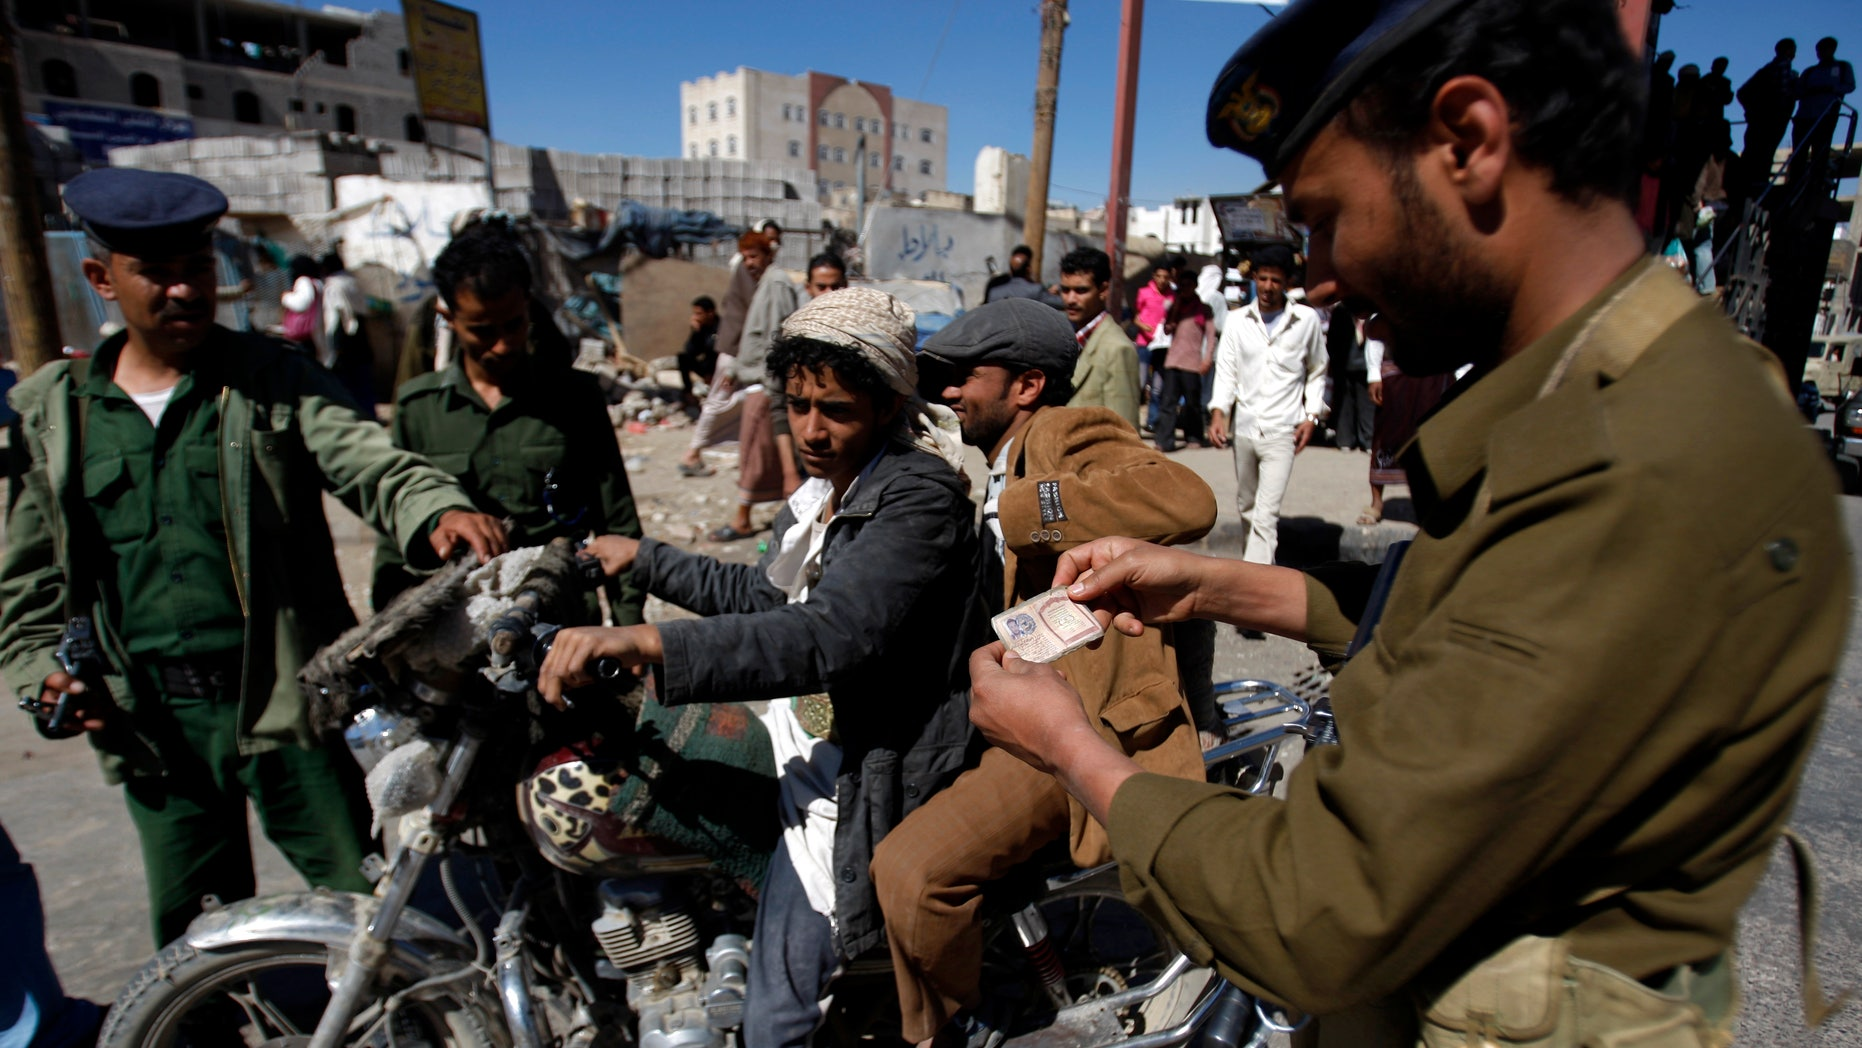 Yemeni soldiers check a motorbike driver at a checkpoint in Sanaa, Yemen, Saturday,  Jan. 5, 2013. Yemeni police have said that more than 40 security and army personnel were shot dead in drive-by attacks involving motorbikes throughout Yemen in 2012. (AP Photo/Hani Mohammed)